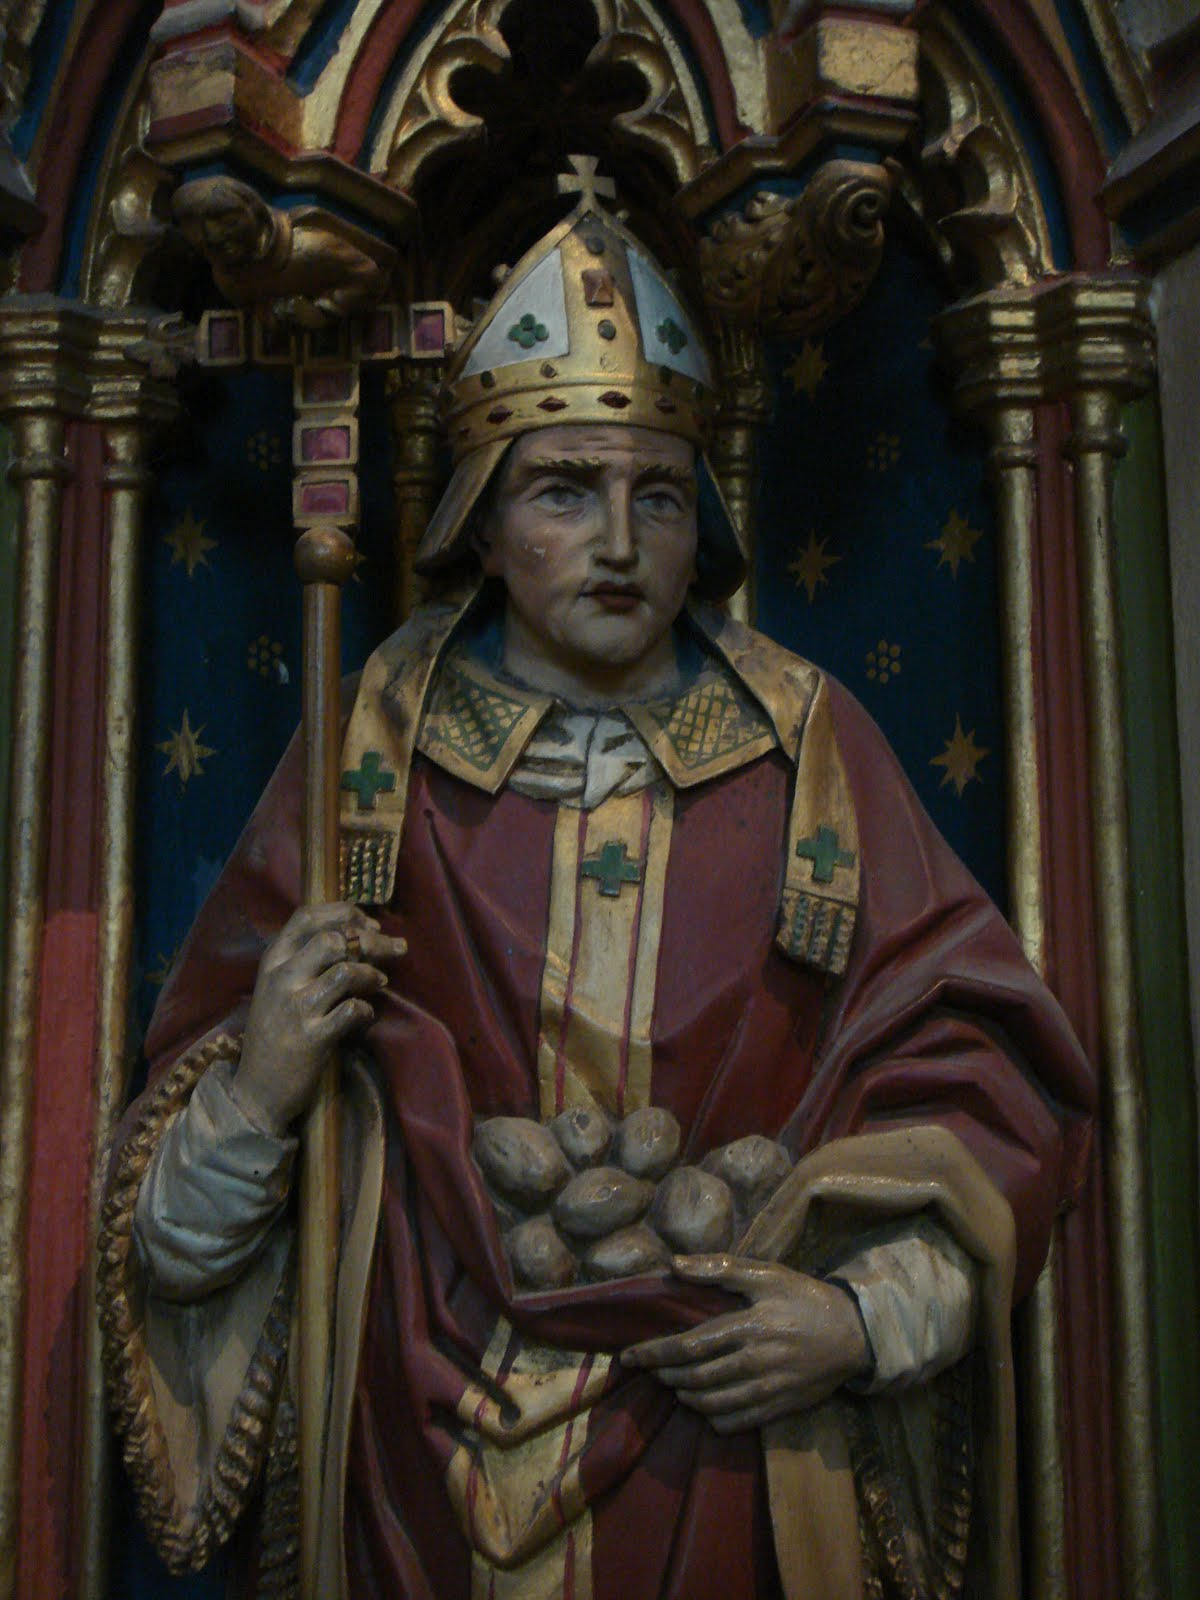 Alphege on the Chichele tomb in Canterbury Cathedral